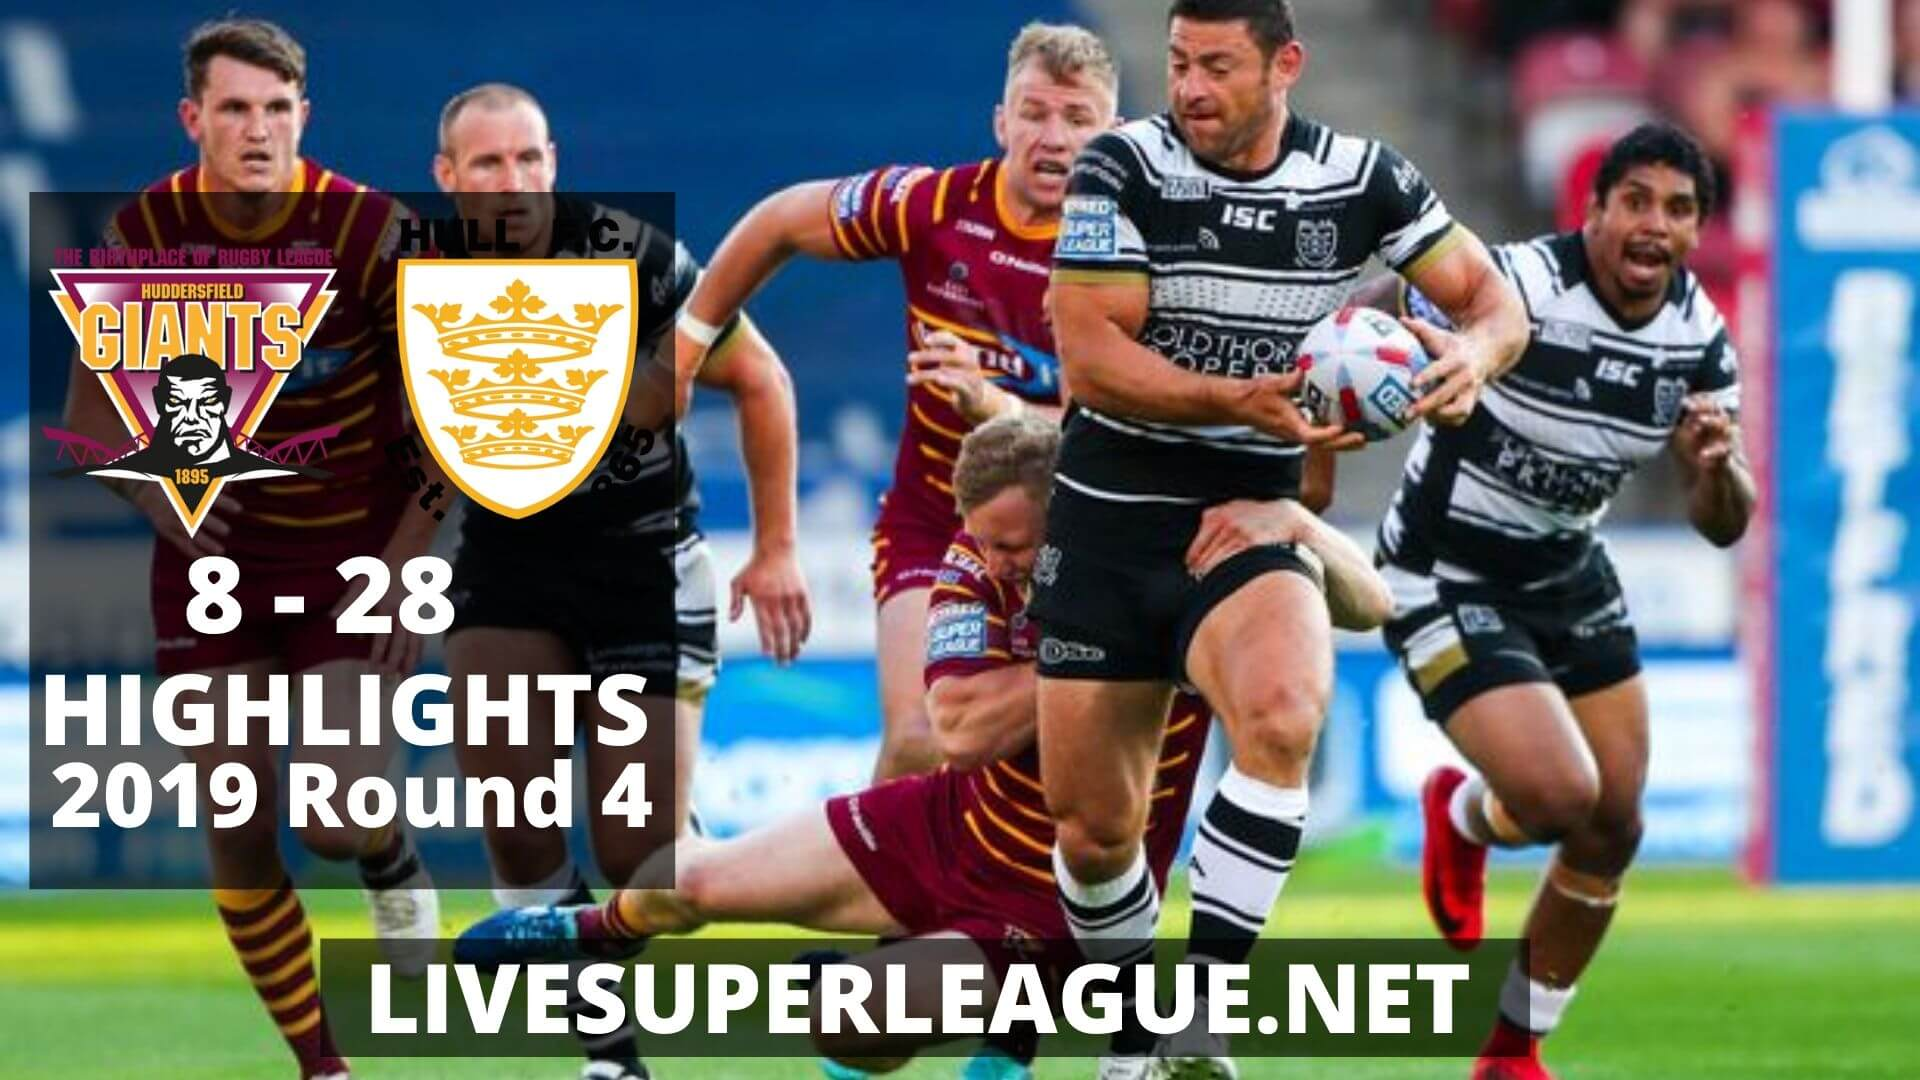 Huddersfield Giants Vs Hull F.C Highlights 2019 Round 4